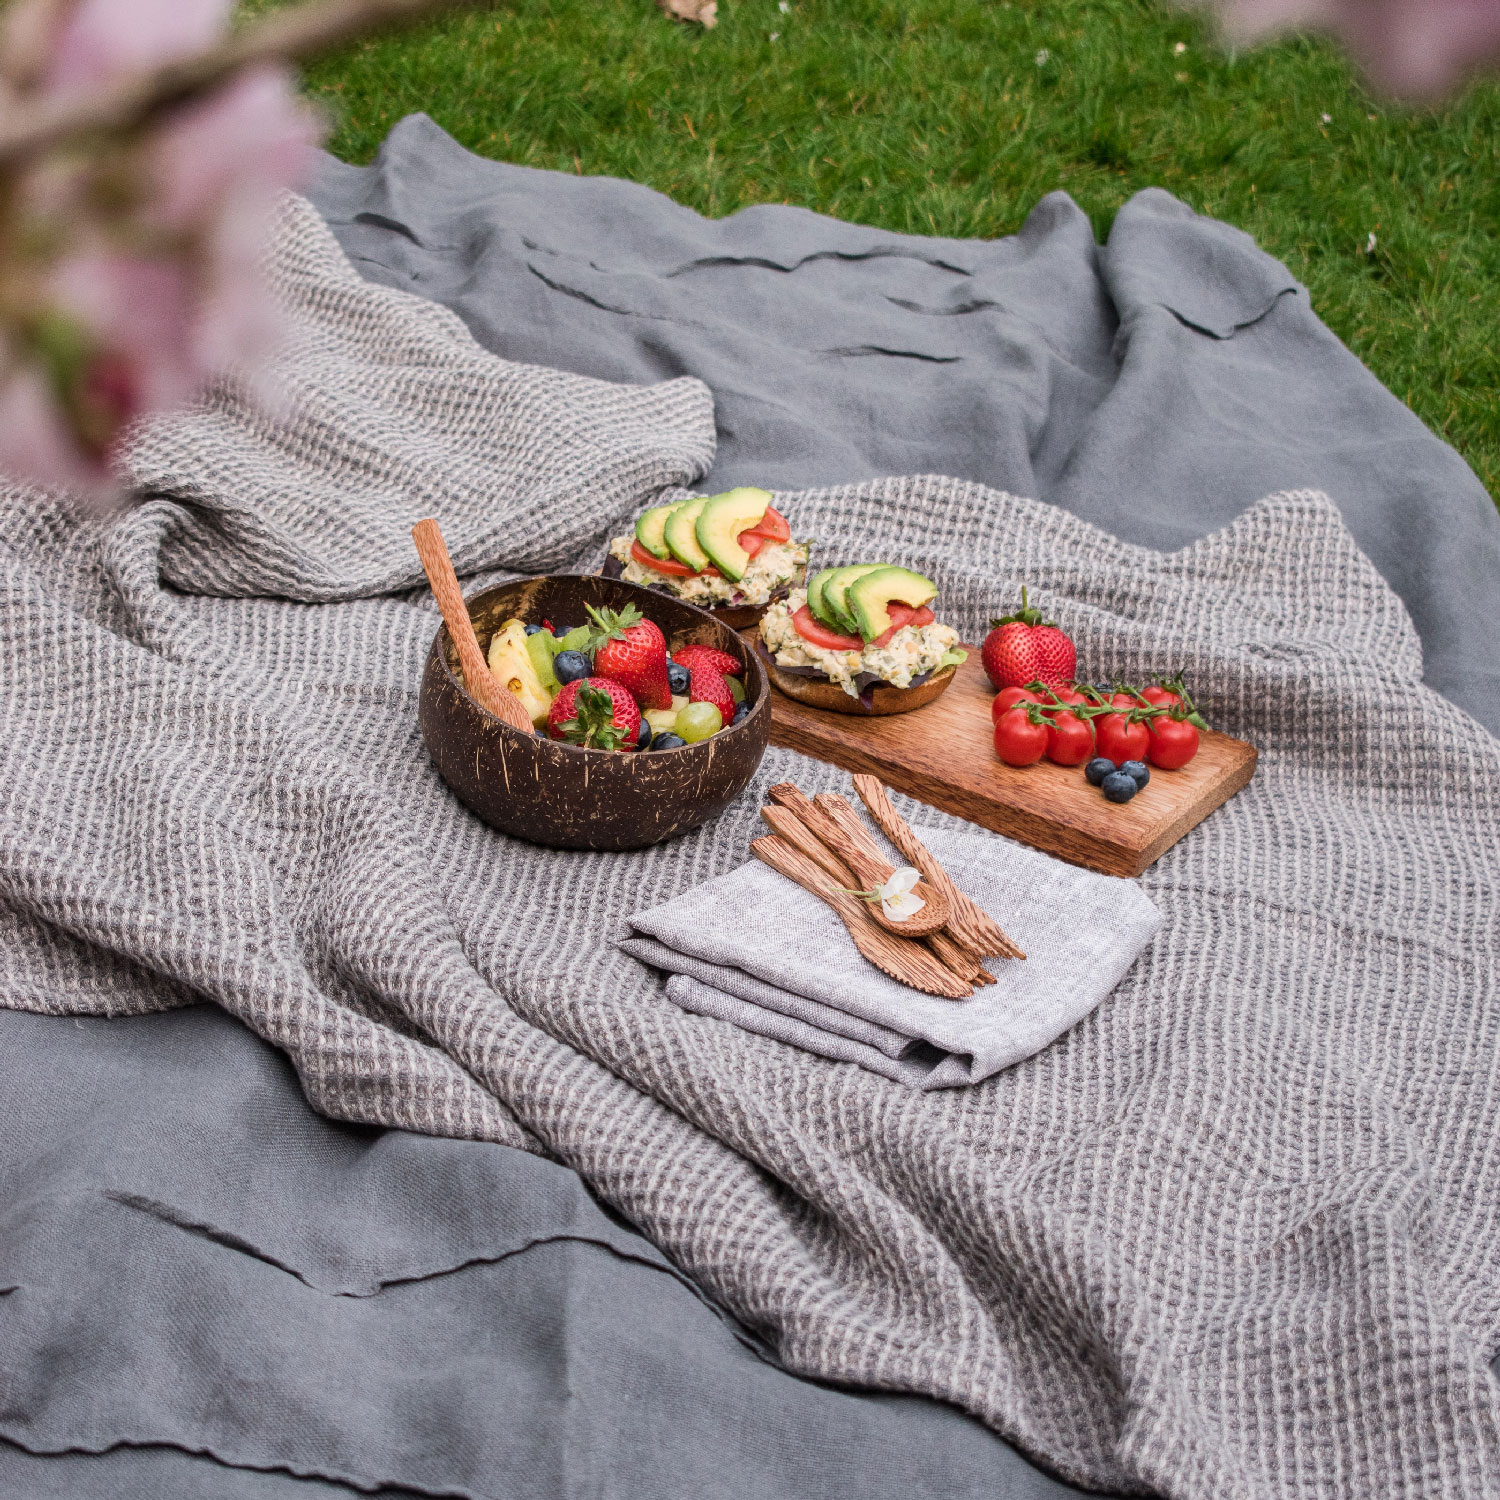 Tips for a sustainable and delicious picnic 🌳